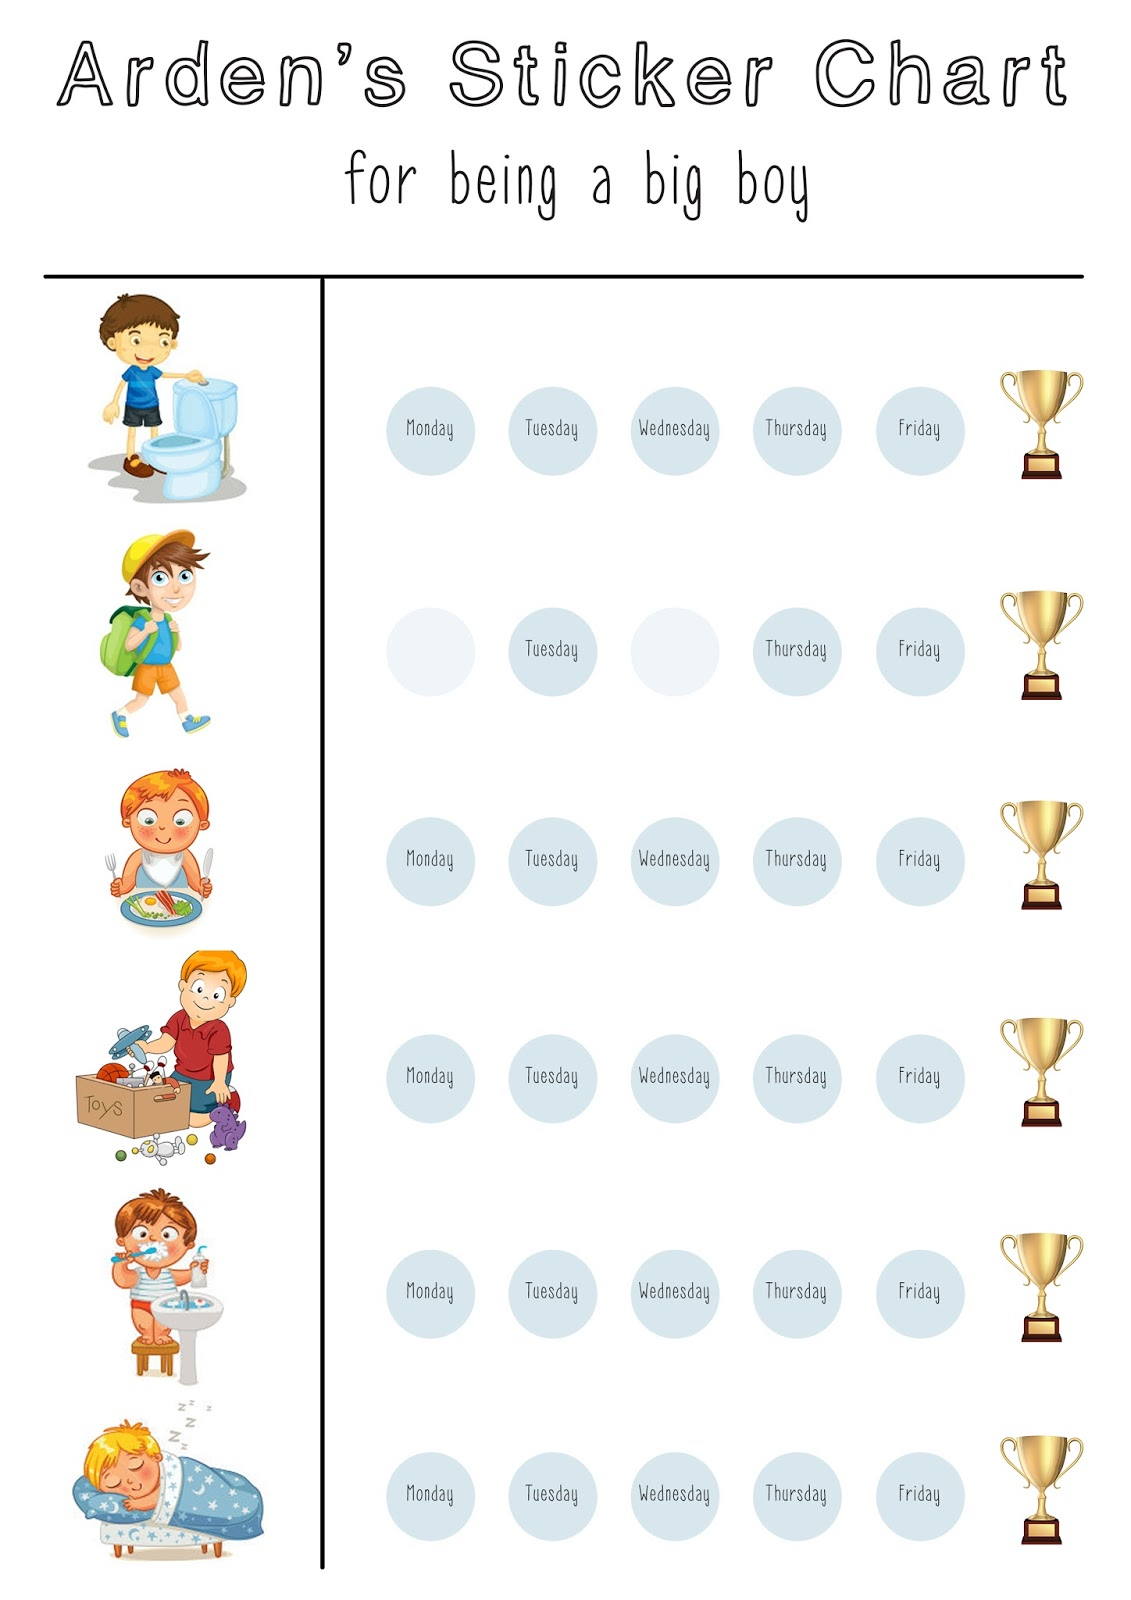 DAILY ROUTINE STICKER CHART FREE PRINTABLE I am Tarryn Donaldson – Sticker Chart